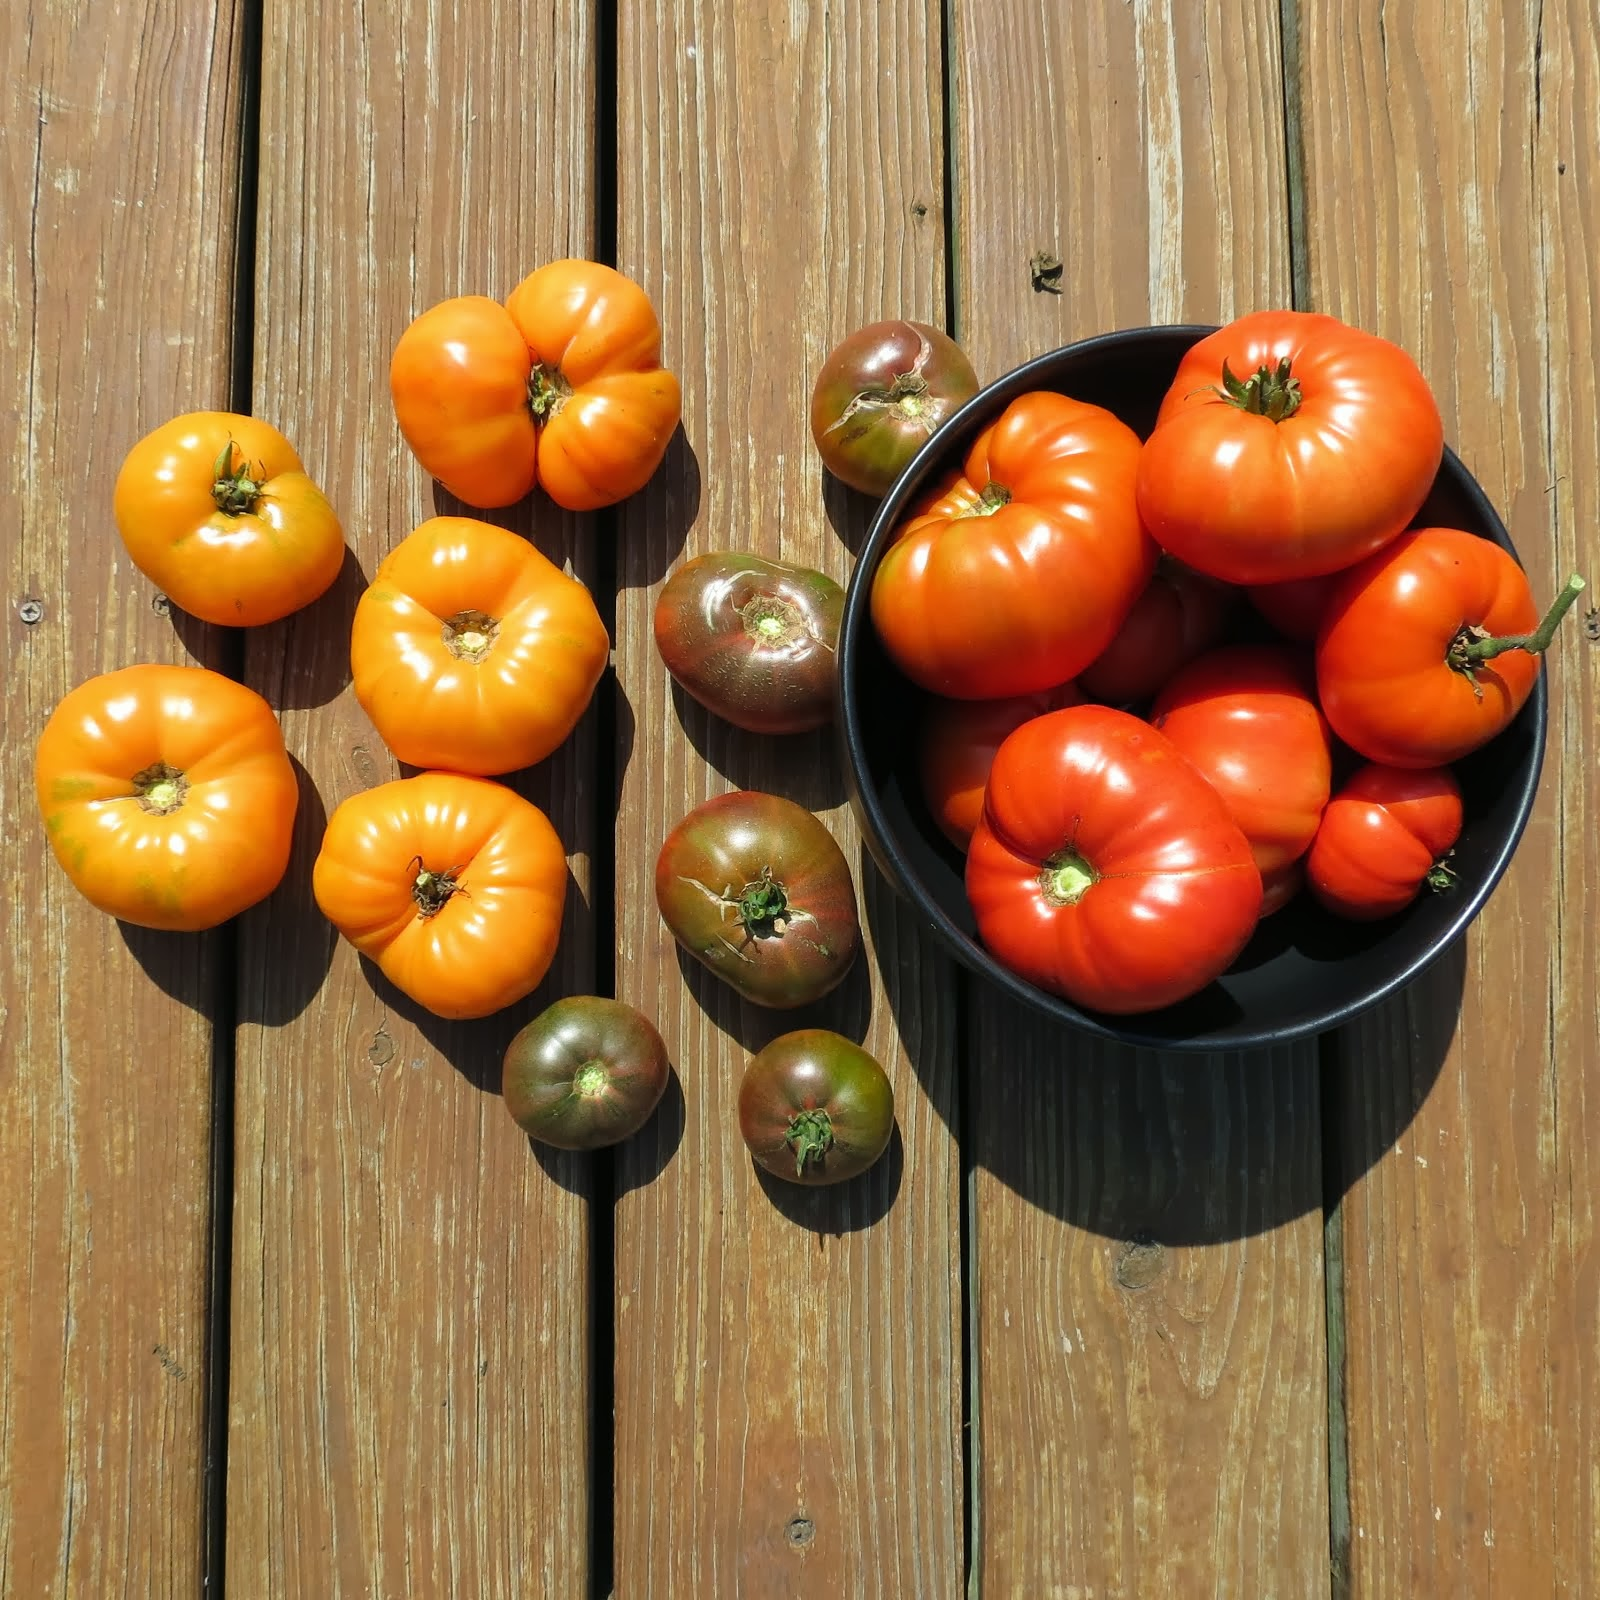 Ten Tips About Tomato Plants – The Rusted Garden